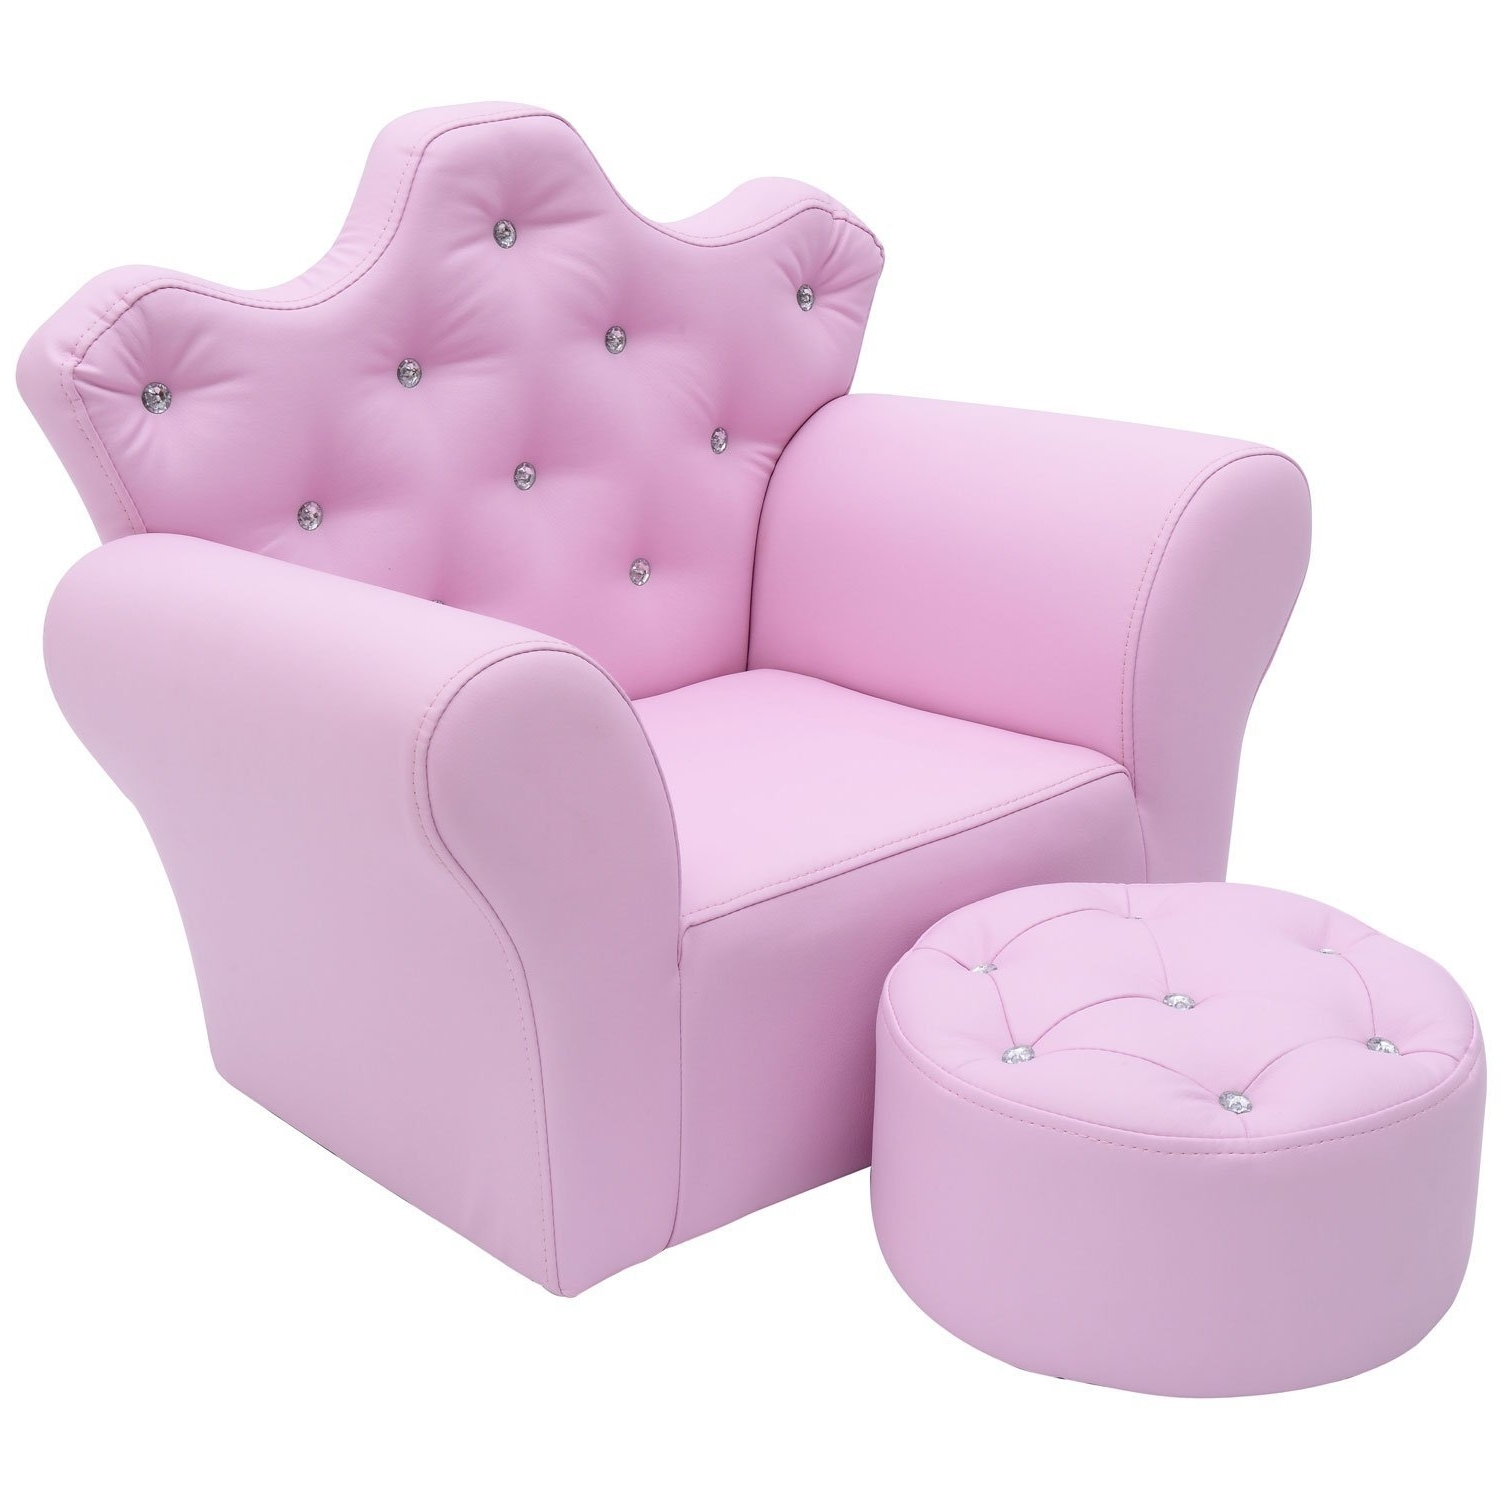 Well Known Armchair : Kids Lounge Chair Recliner For 12 Year Old Upholstered Within Personalized Kids Chairs And Sofas (View 14 of 15)